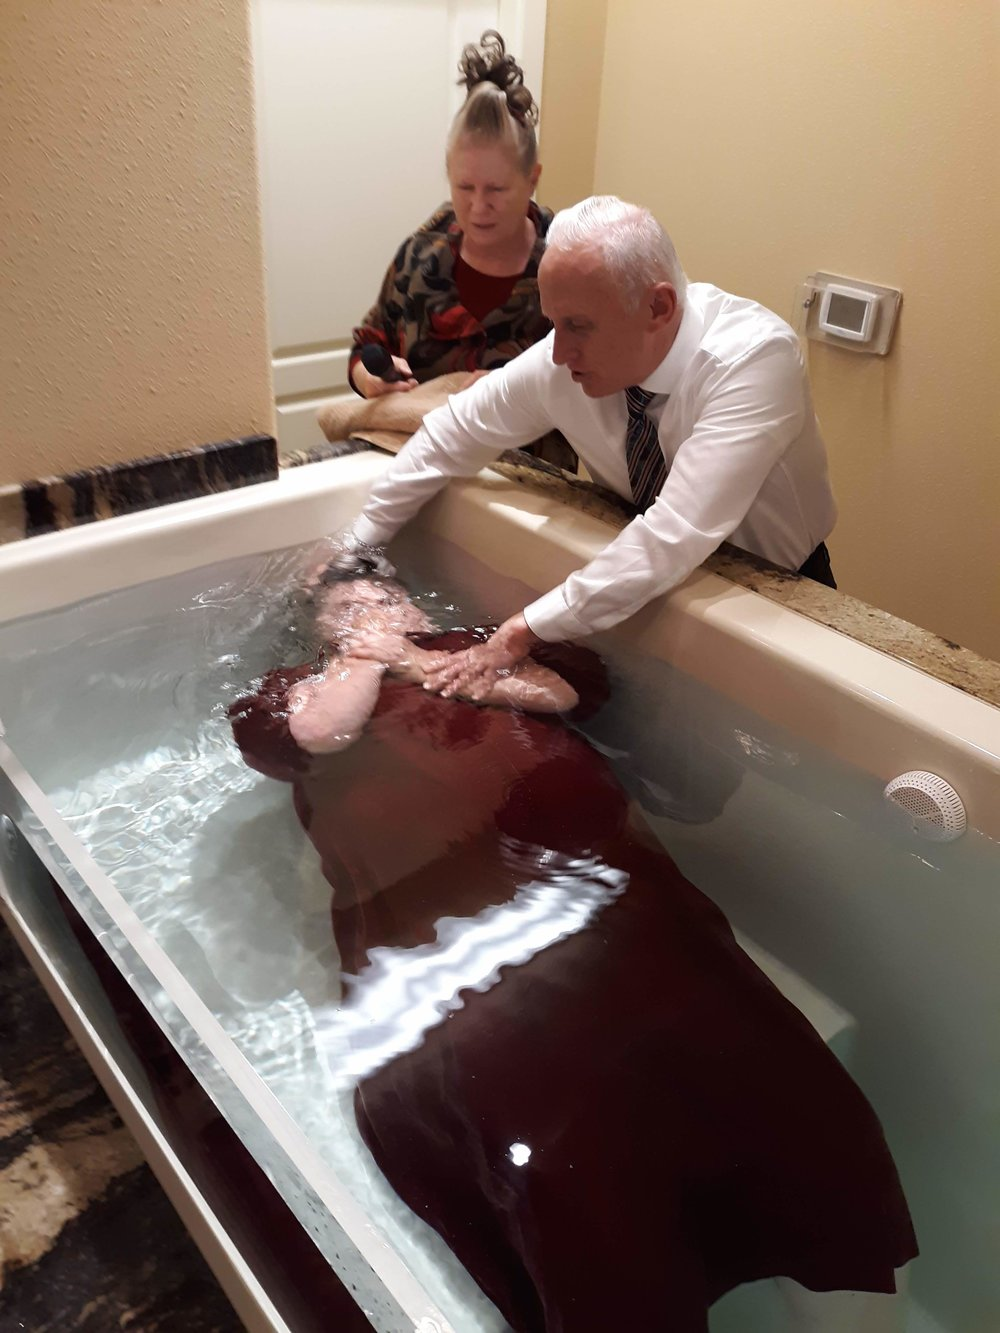 Buried with him in baptism